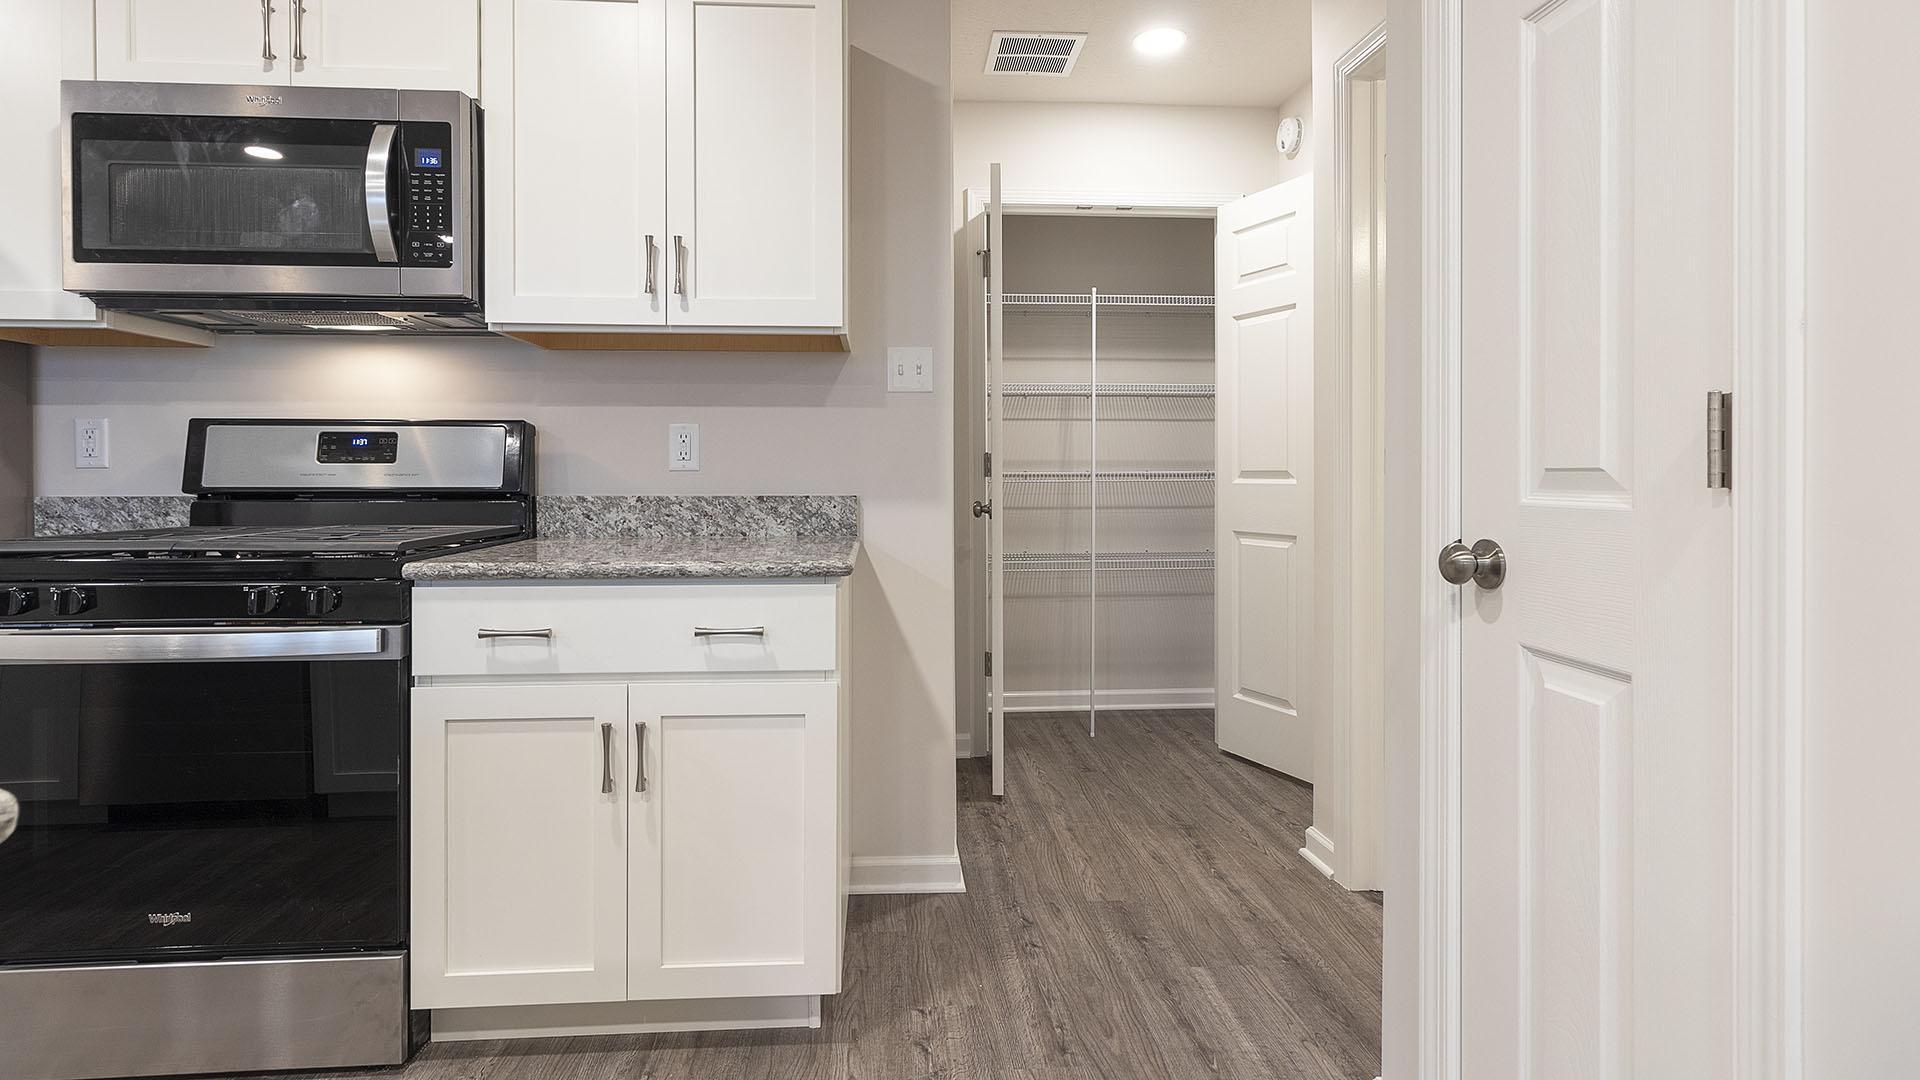 Kitchen featured in the Glynwood By S & A Homes in Altoona, PA